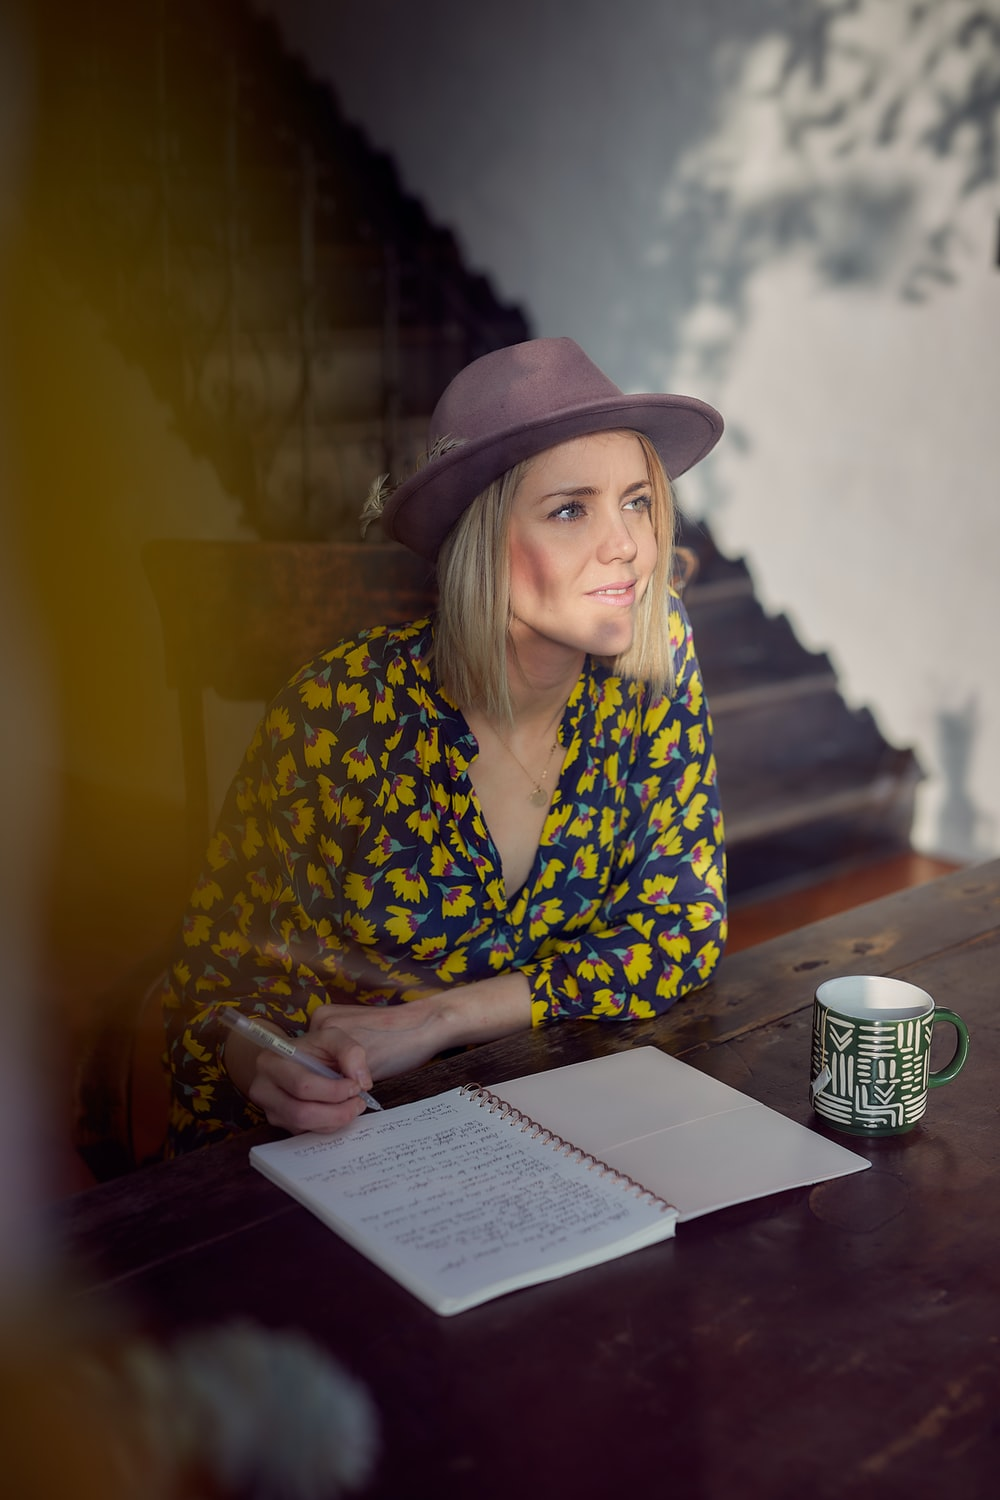 woman in blue and yellow floral long sleeve shirt wearing brown fedora hat